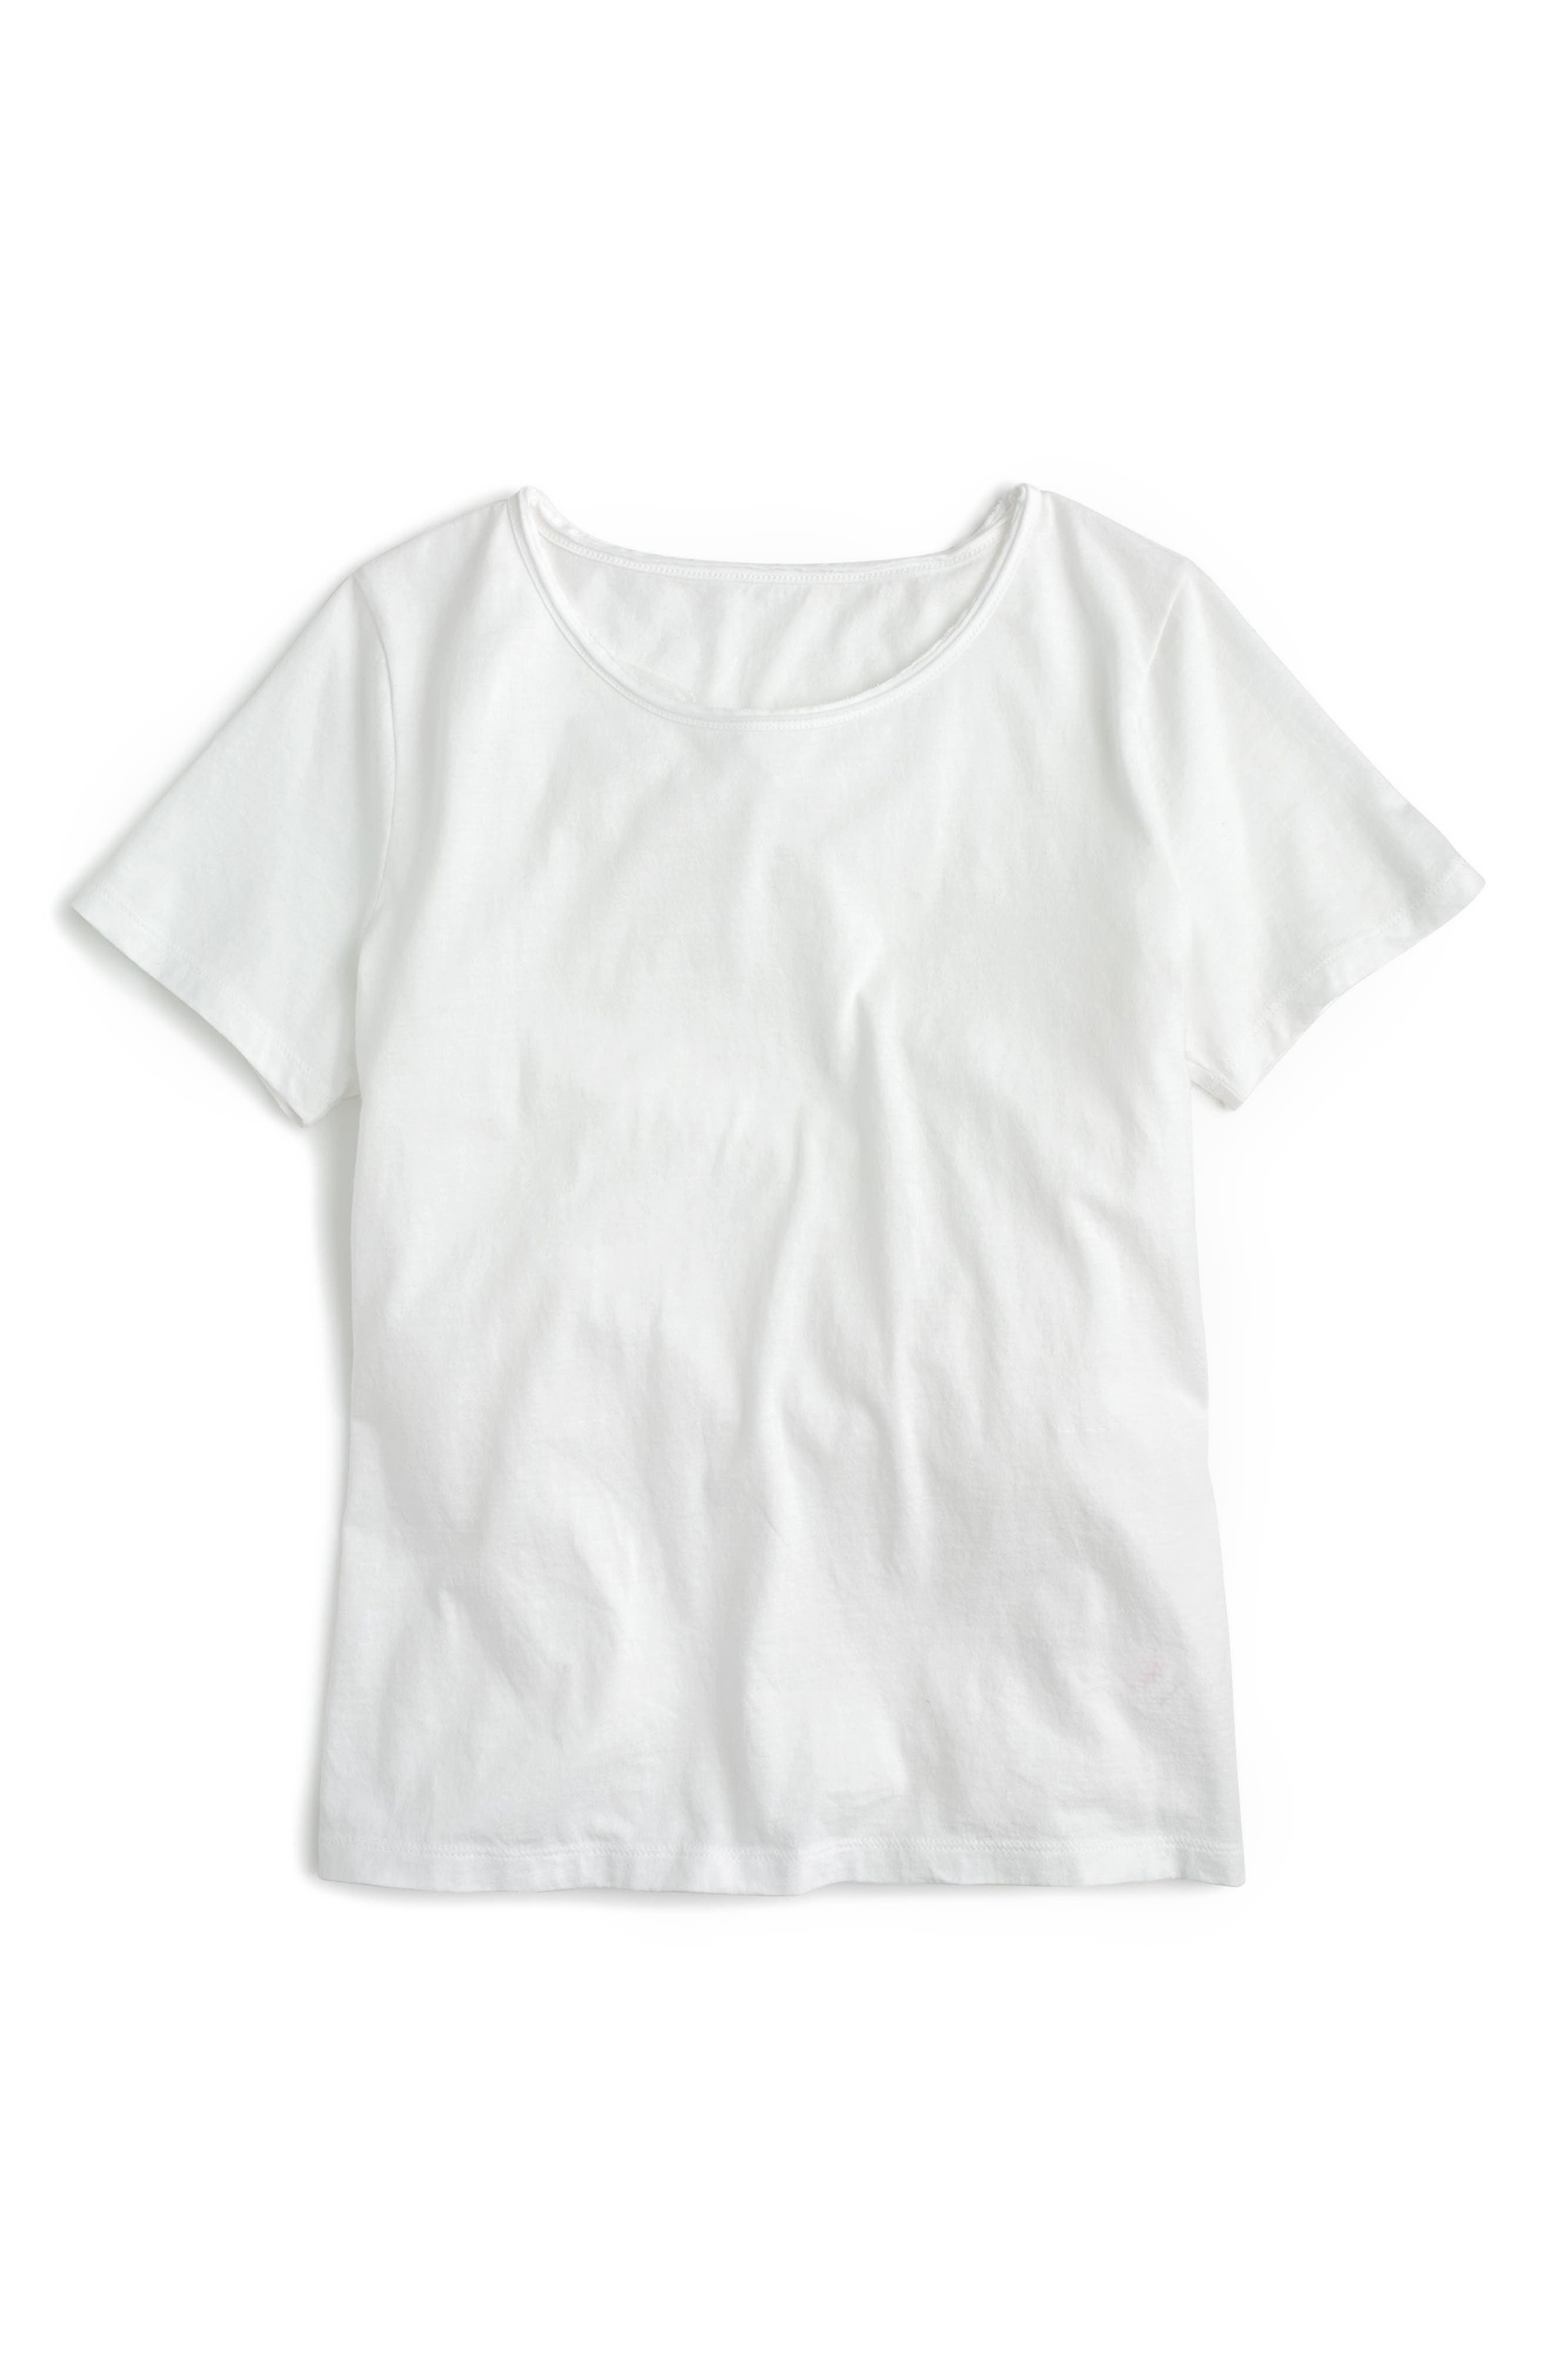 J.Crew New Crewneck Tee,                             Alternate thumbnail 2, color,                             White